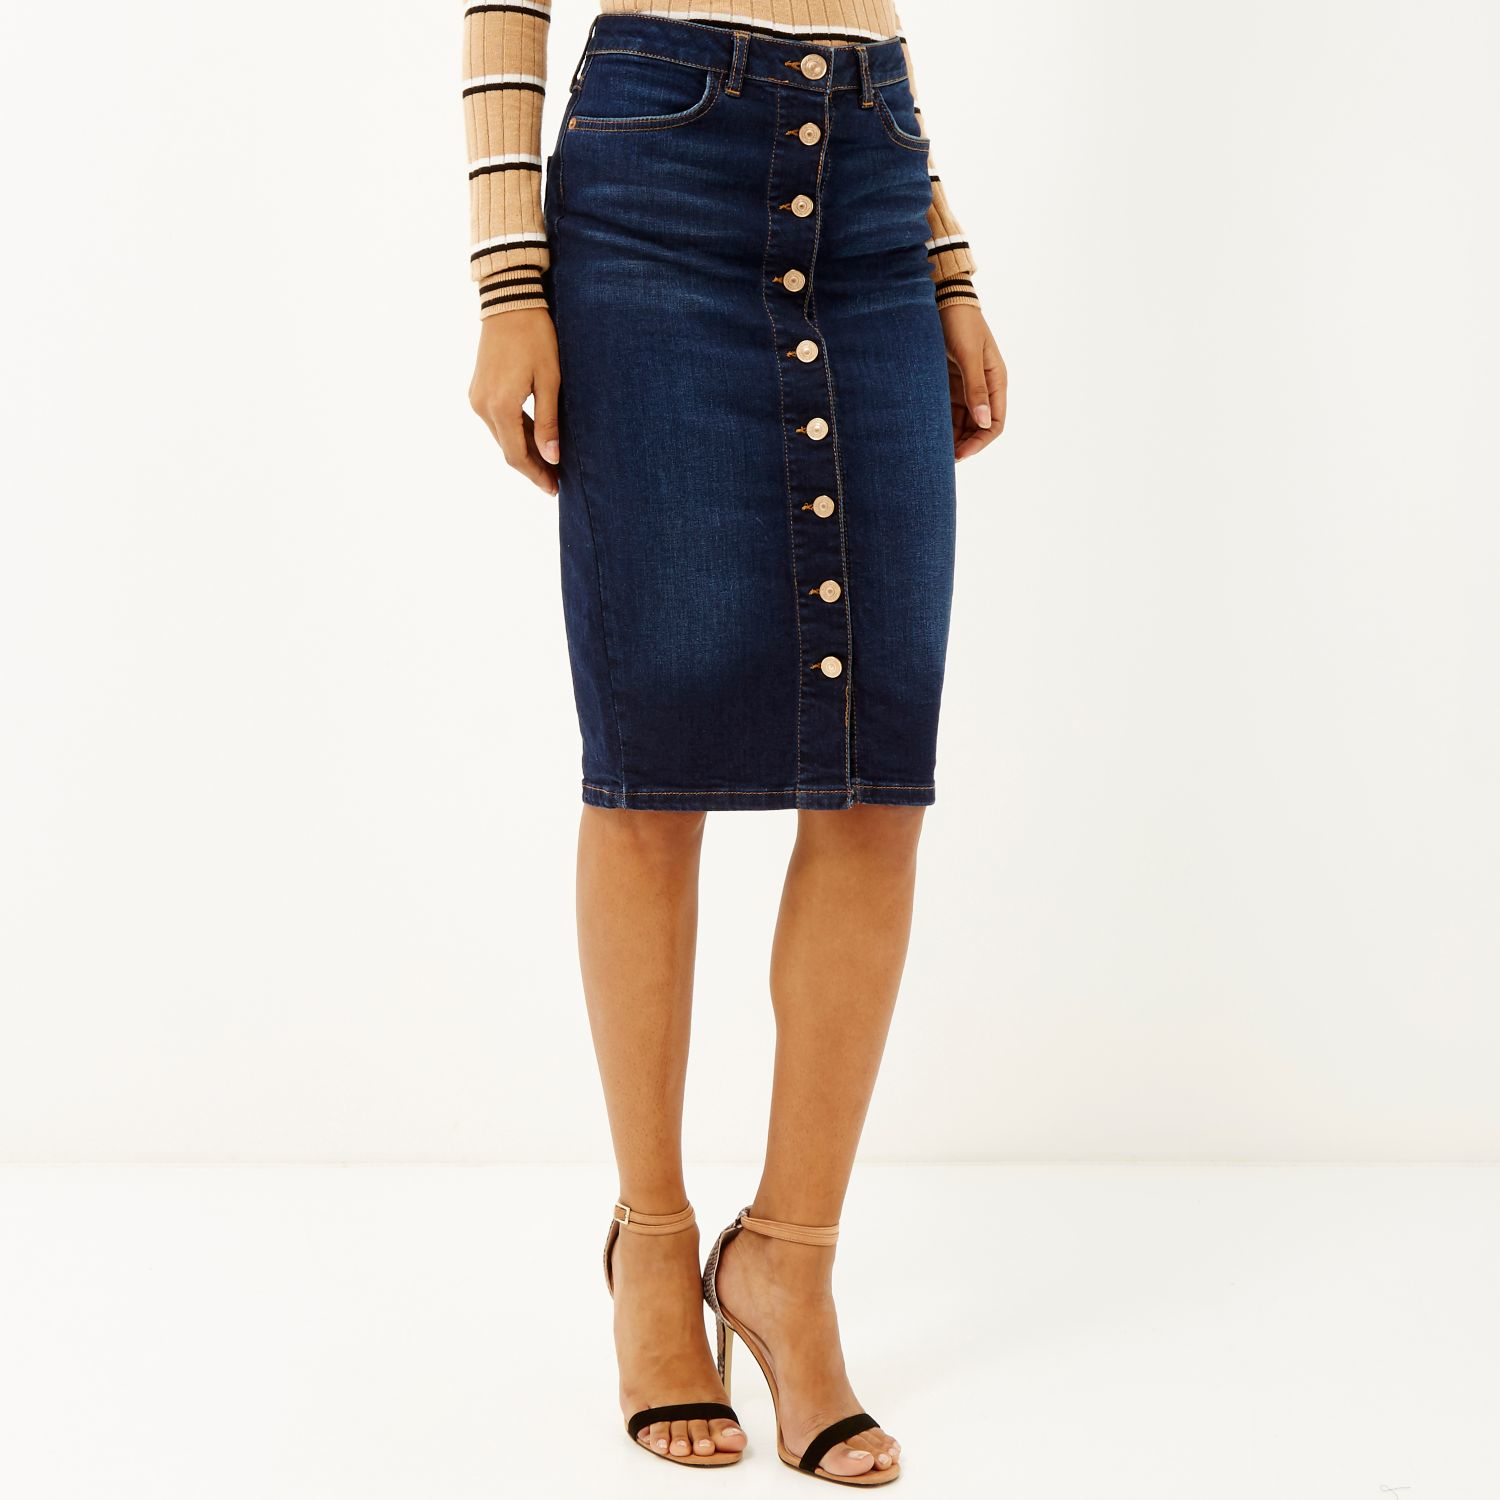 River Island Womens corset pencil denim skirt Free Shipping Low Shipping Fee Pay With Paypal Online 2018 Sale Online Clearance Looking For Choice jpBEs4rLQ